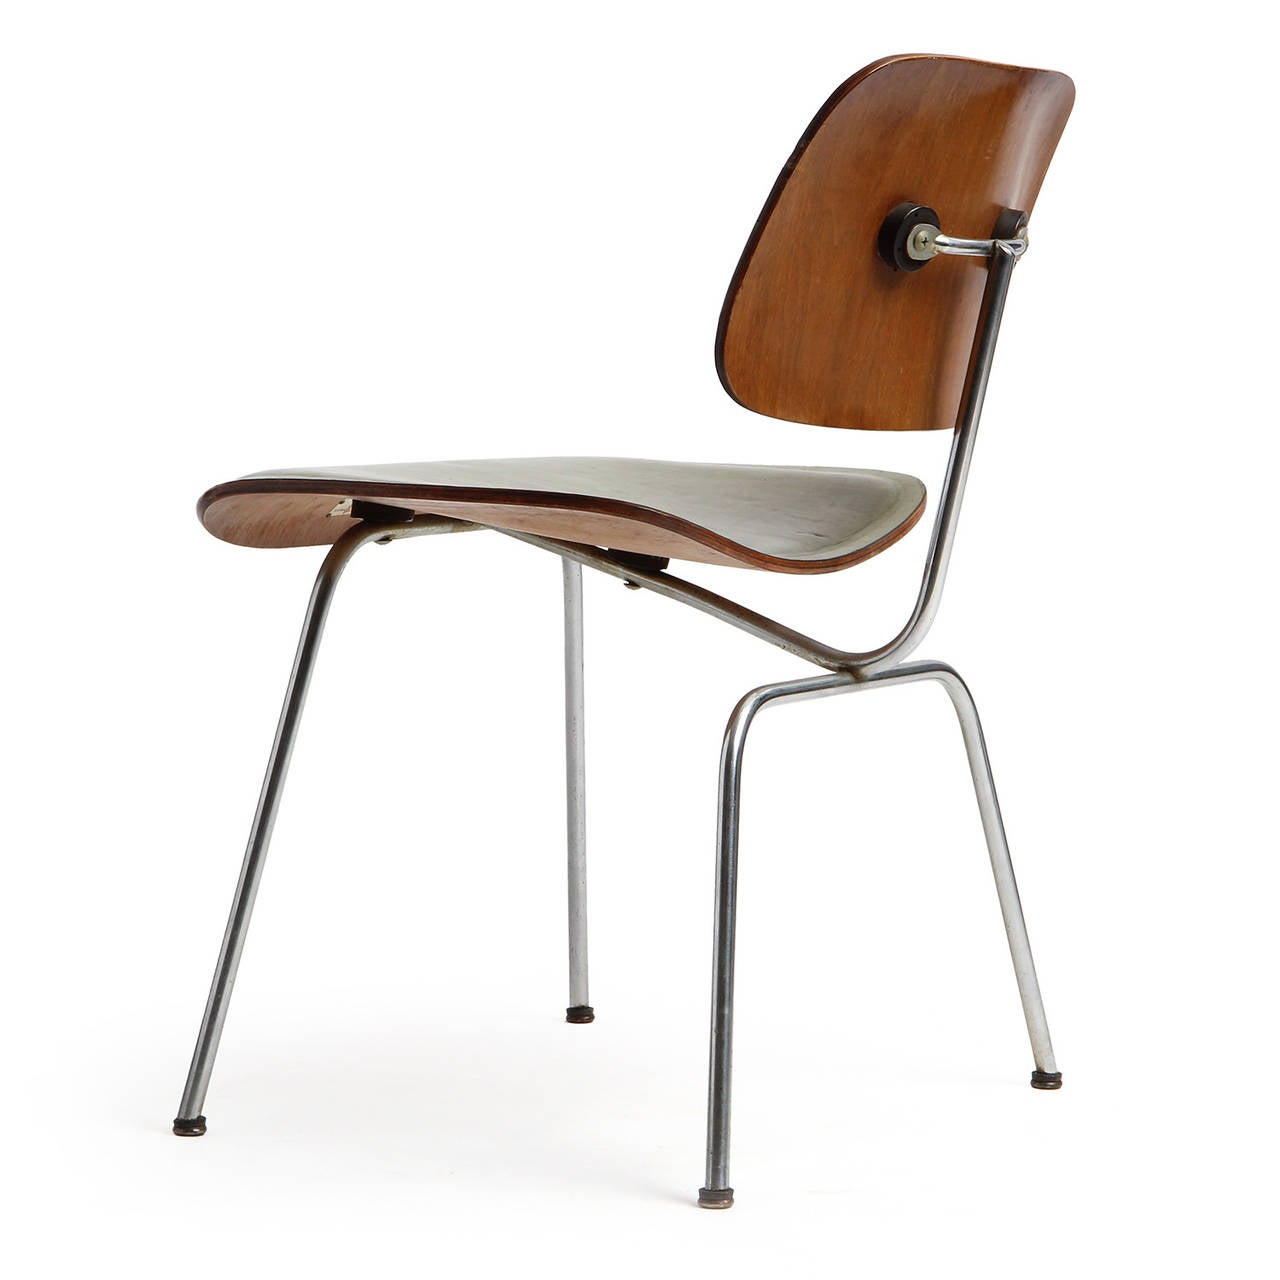 eames leather chair dining greendale rocking cushions dcm by charles and ray for sale at 1stdibs